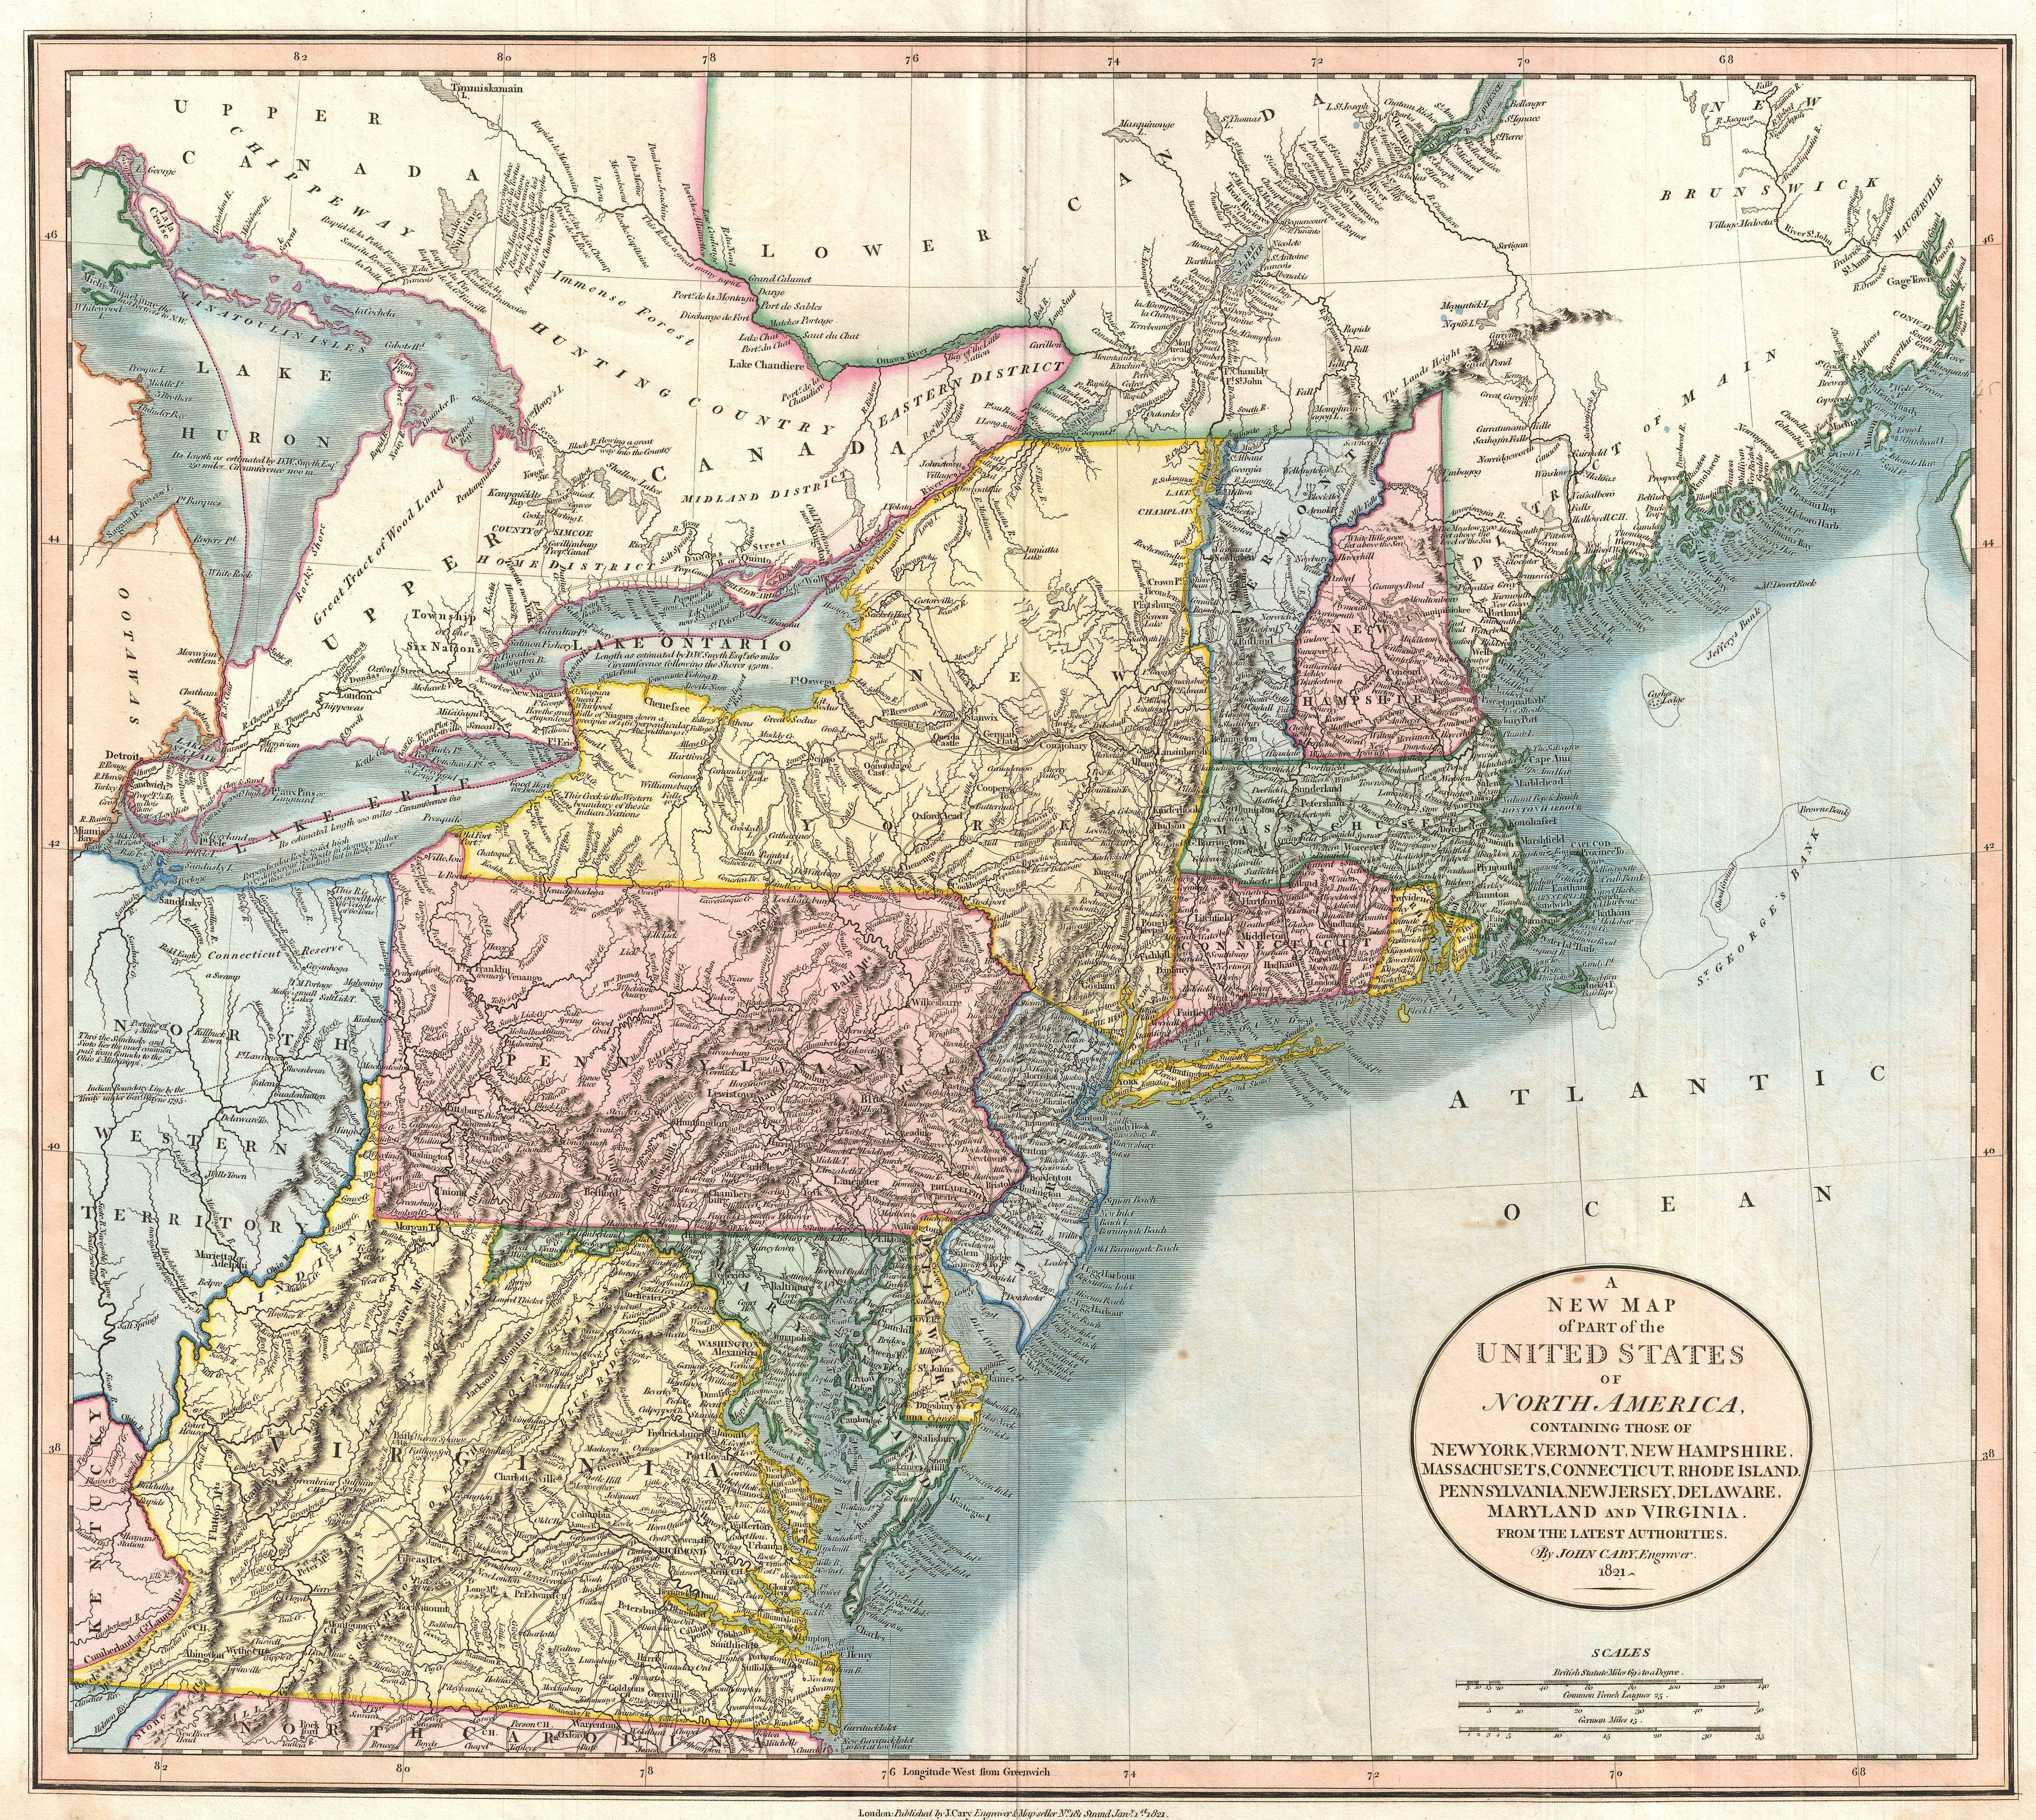 ny state maps with File 1821 Cary Map Of New England  New York  Pennsylvania And Virginia   Geographicus   Newyorknewengland Cary 1821 on Maps likewise Map Of Northern Florida as well Map as well 5284 as well Usa new york.